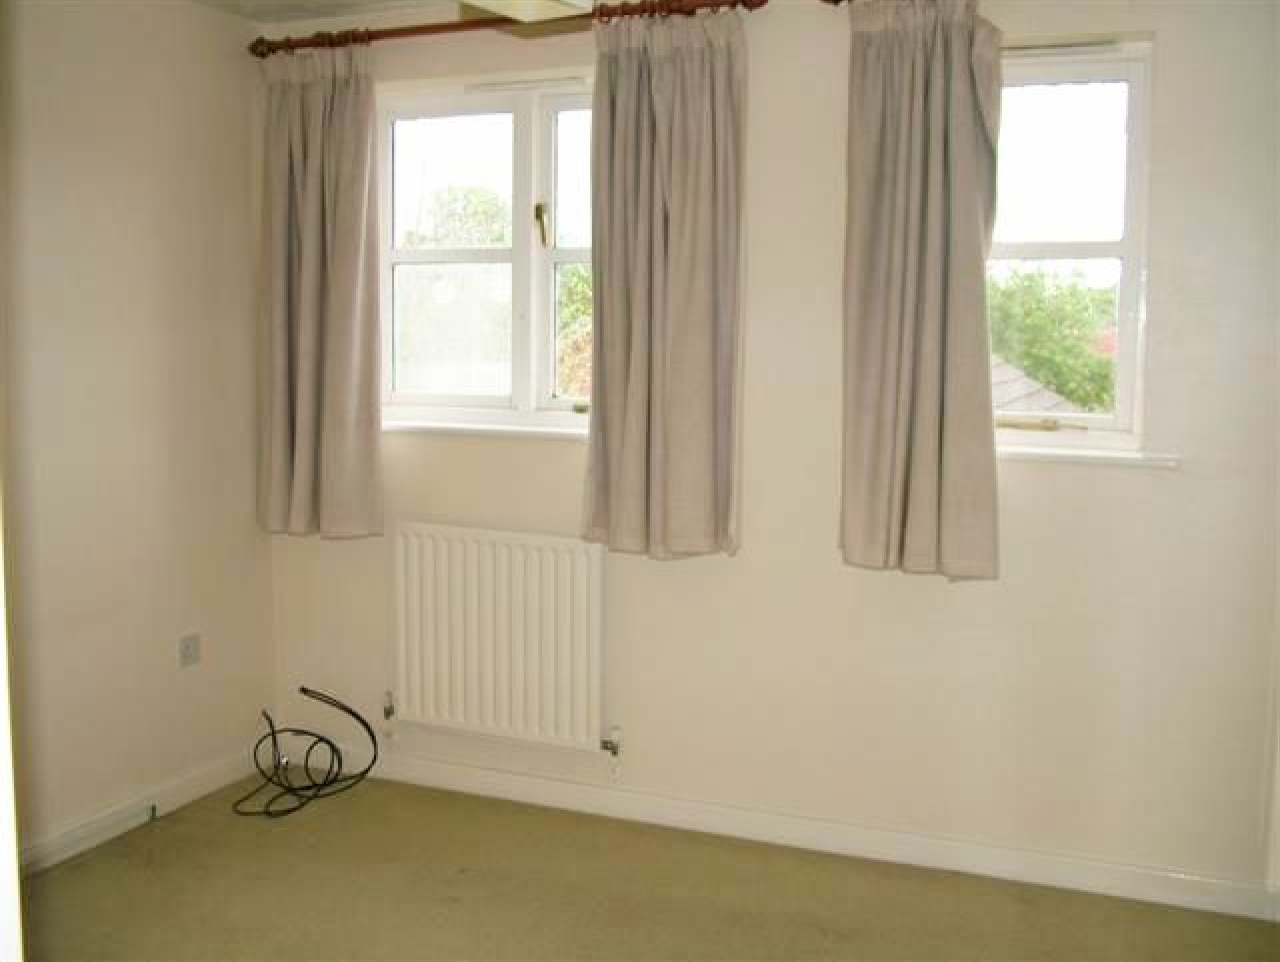 2 Bed Semi-detached House To Rent - Photograph 5